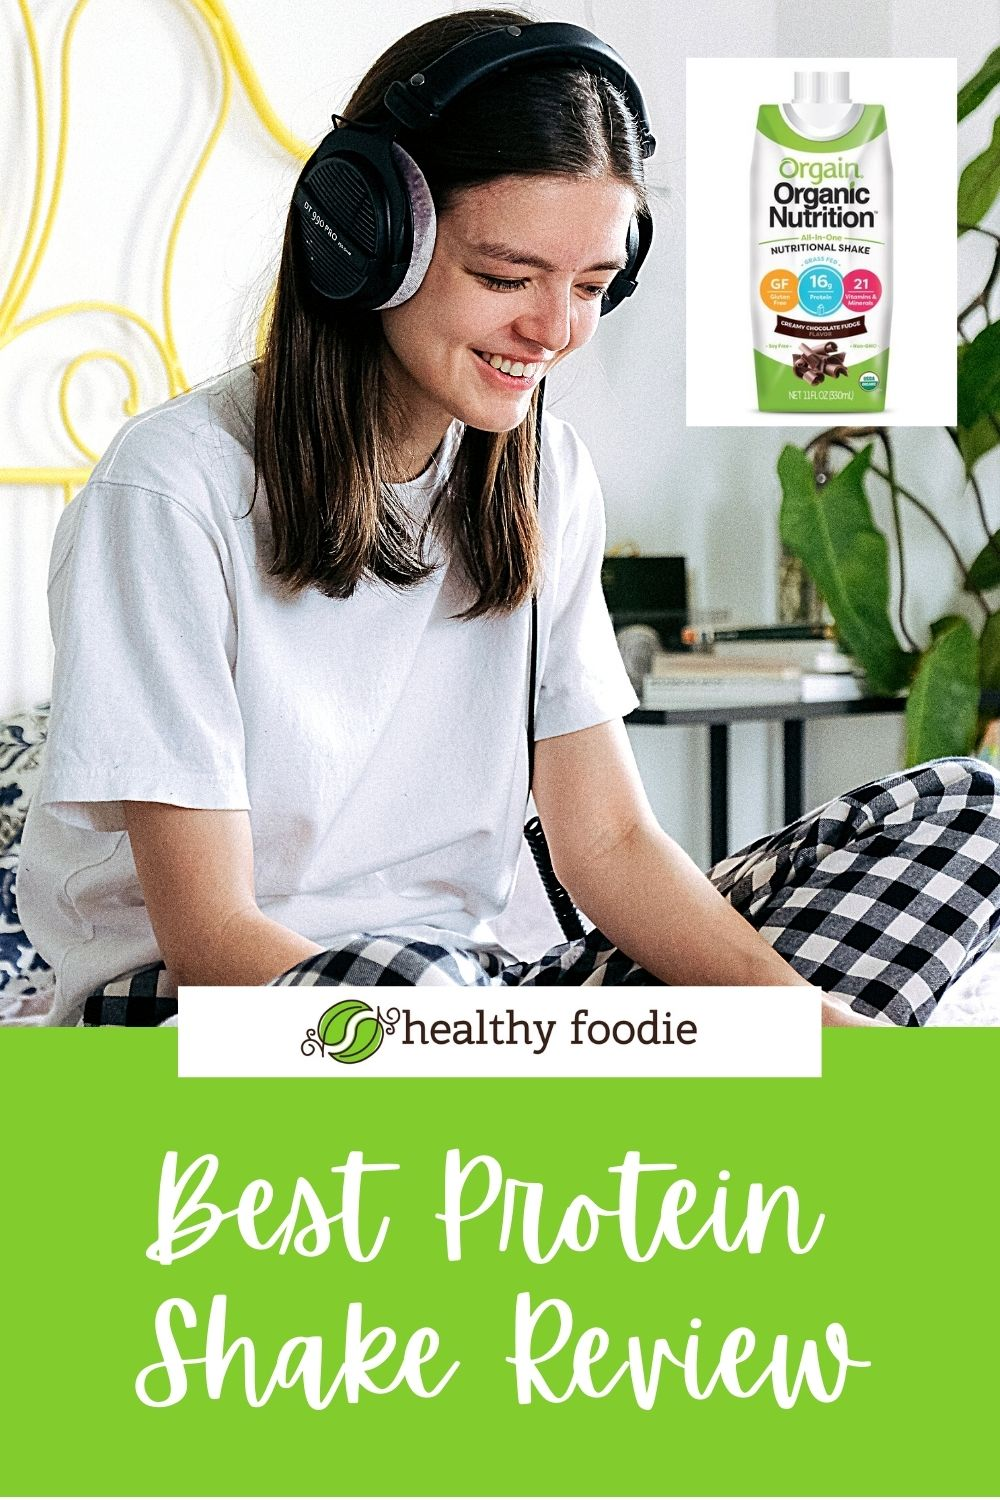 Best Protein Shake Review